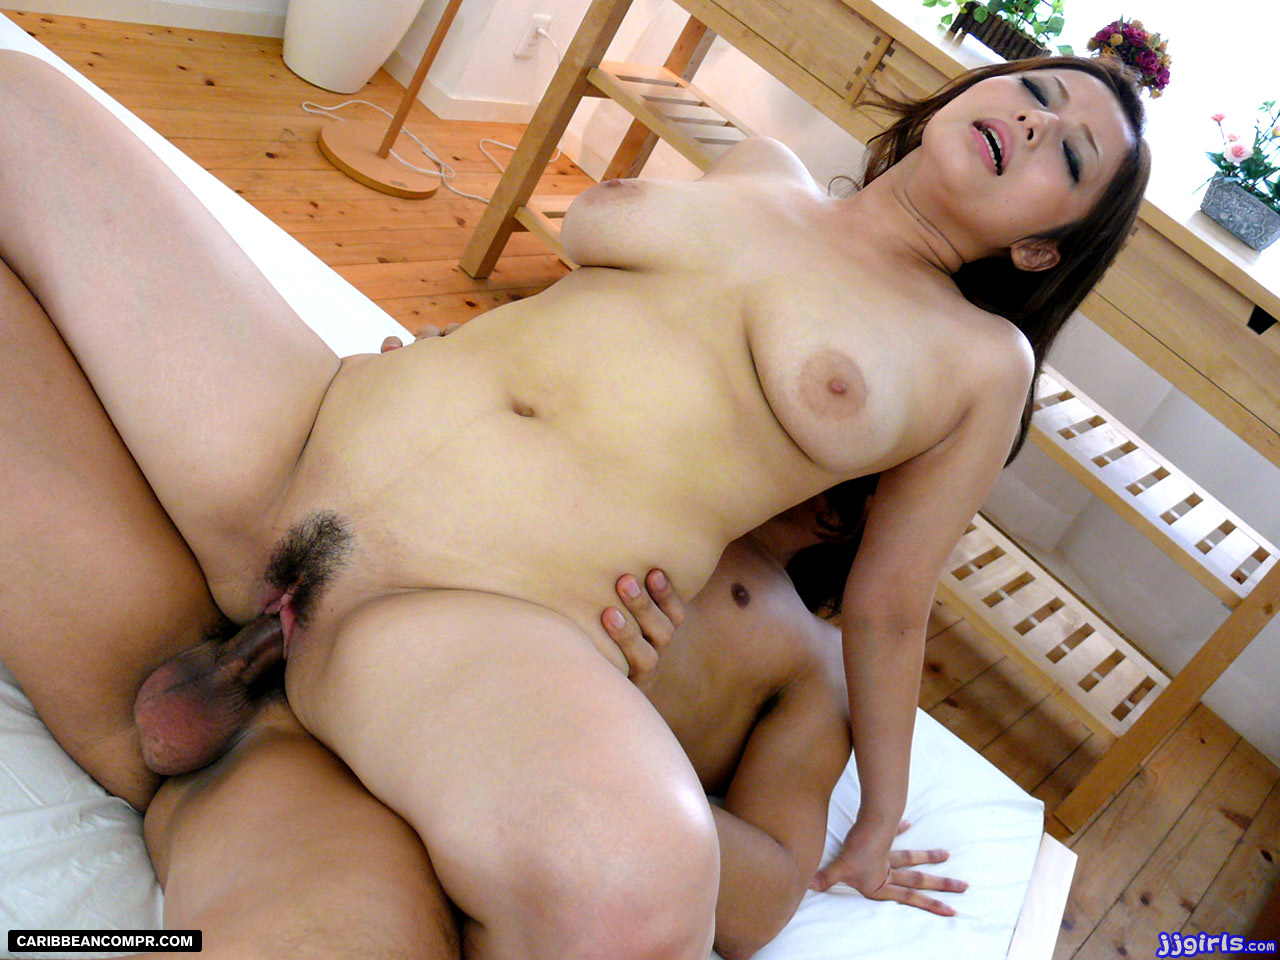 Watch Japanese Images Online Porn Free